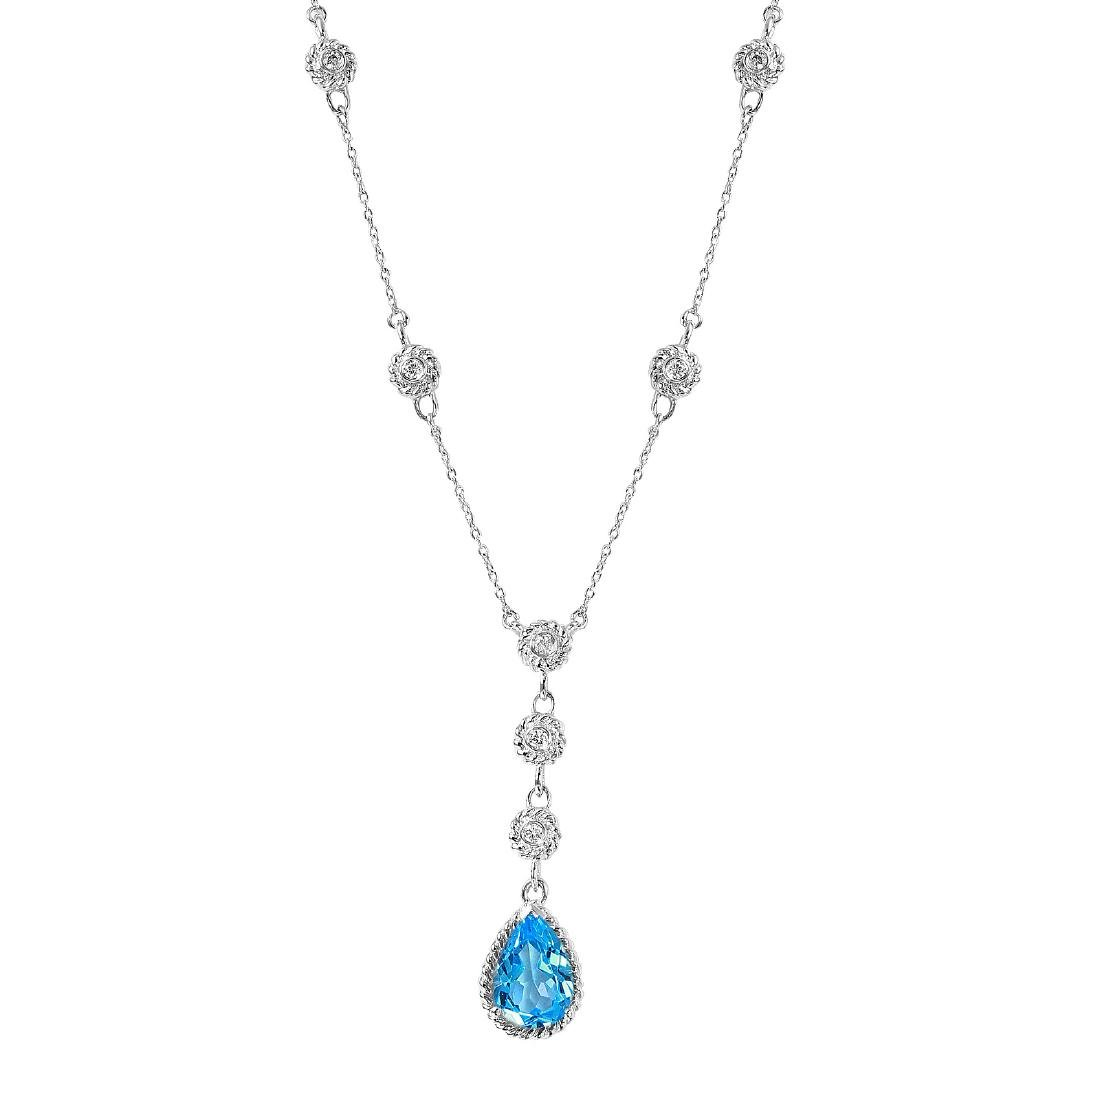 14KT White Gold 2.14ctw Topaz Diamond Necklace Length - 5